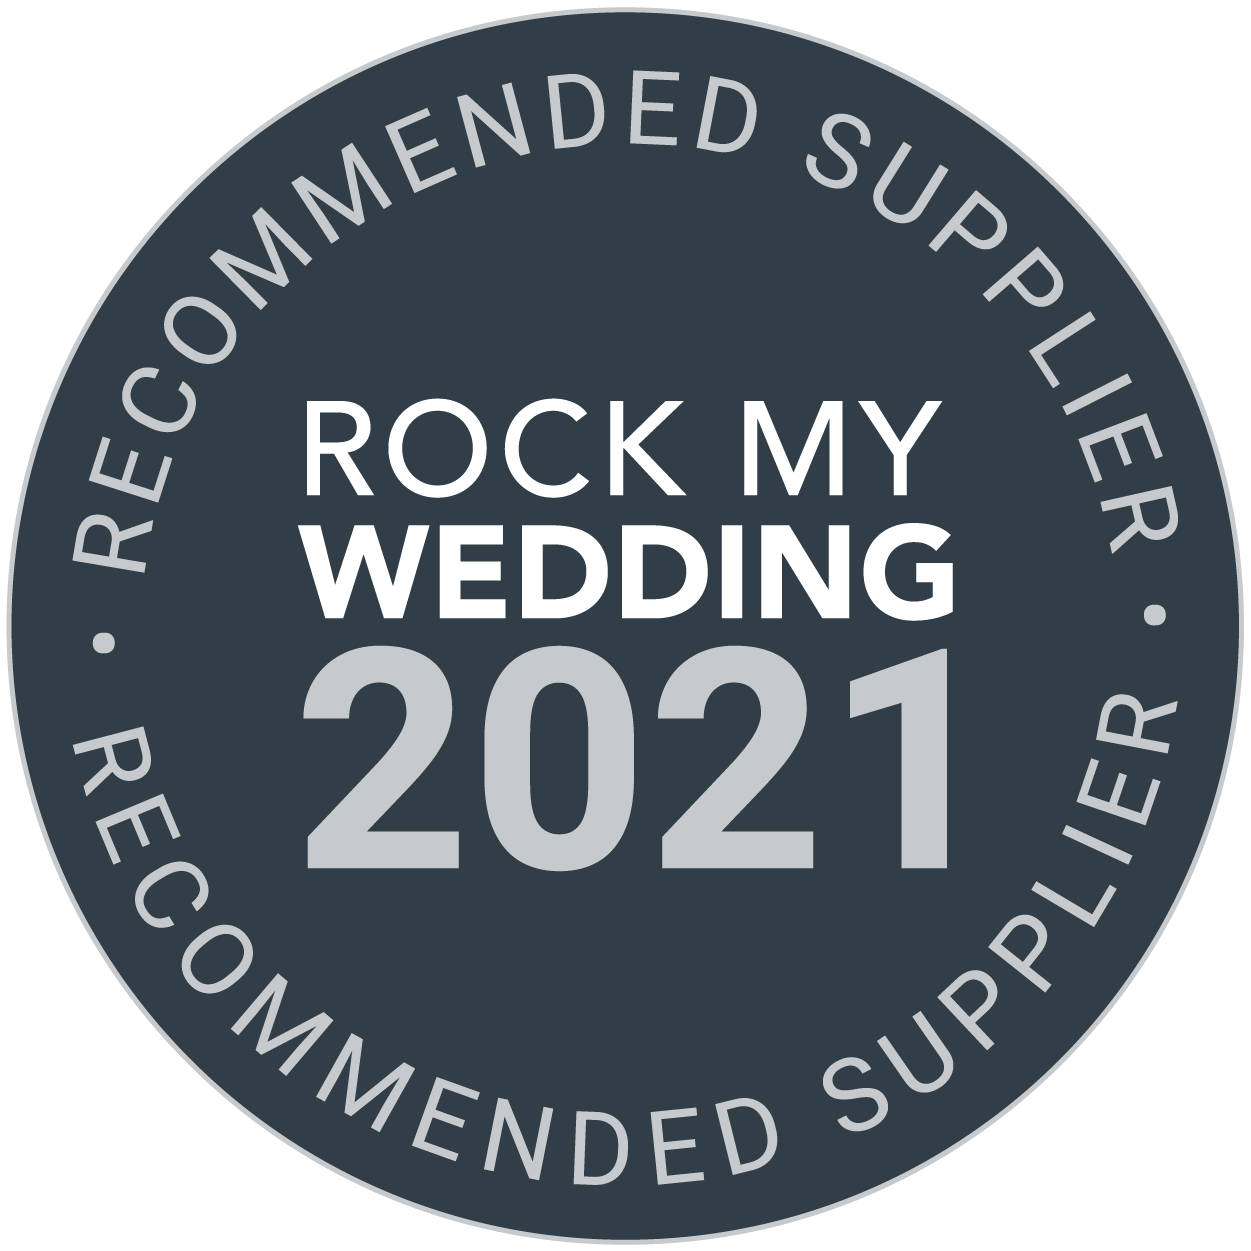 rock my wedding recommended supplier badge